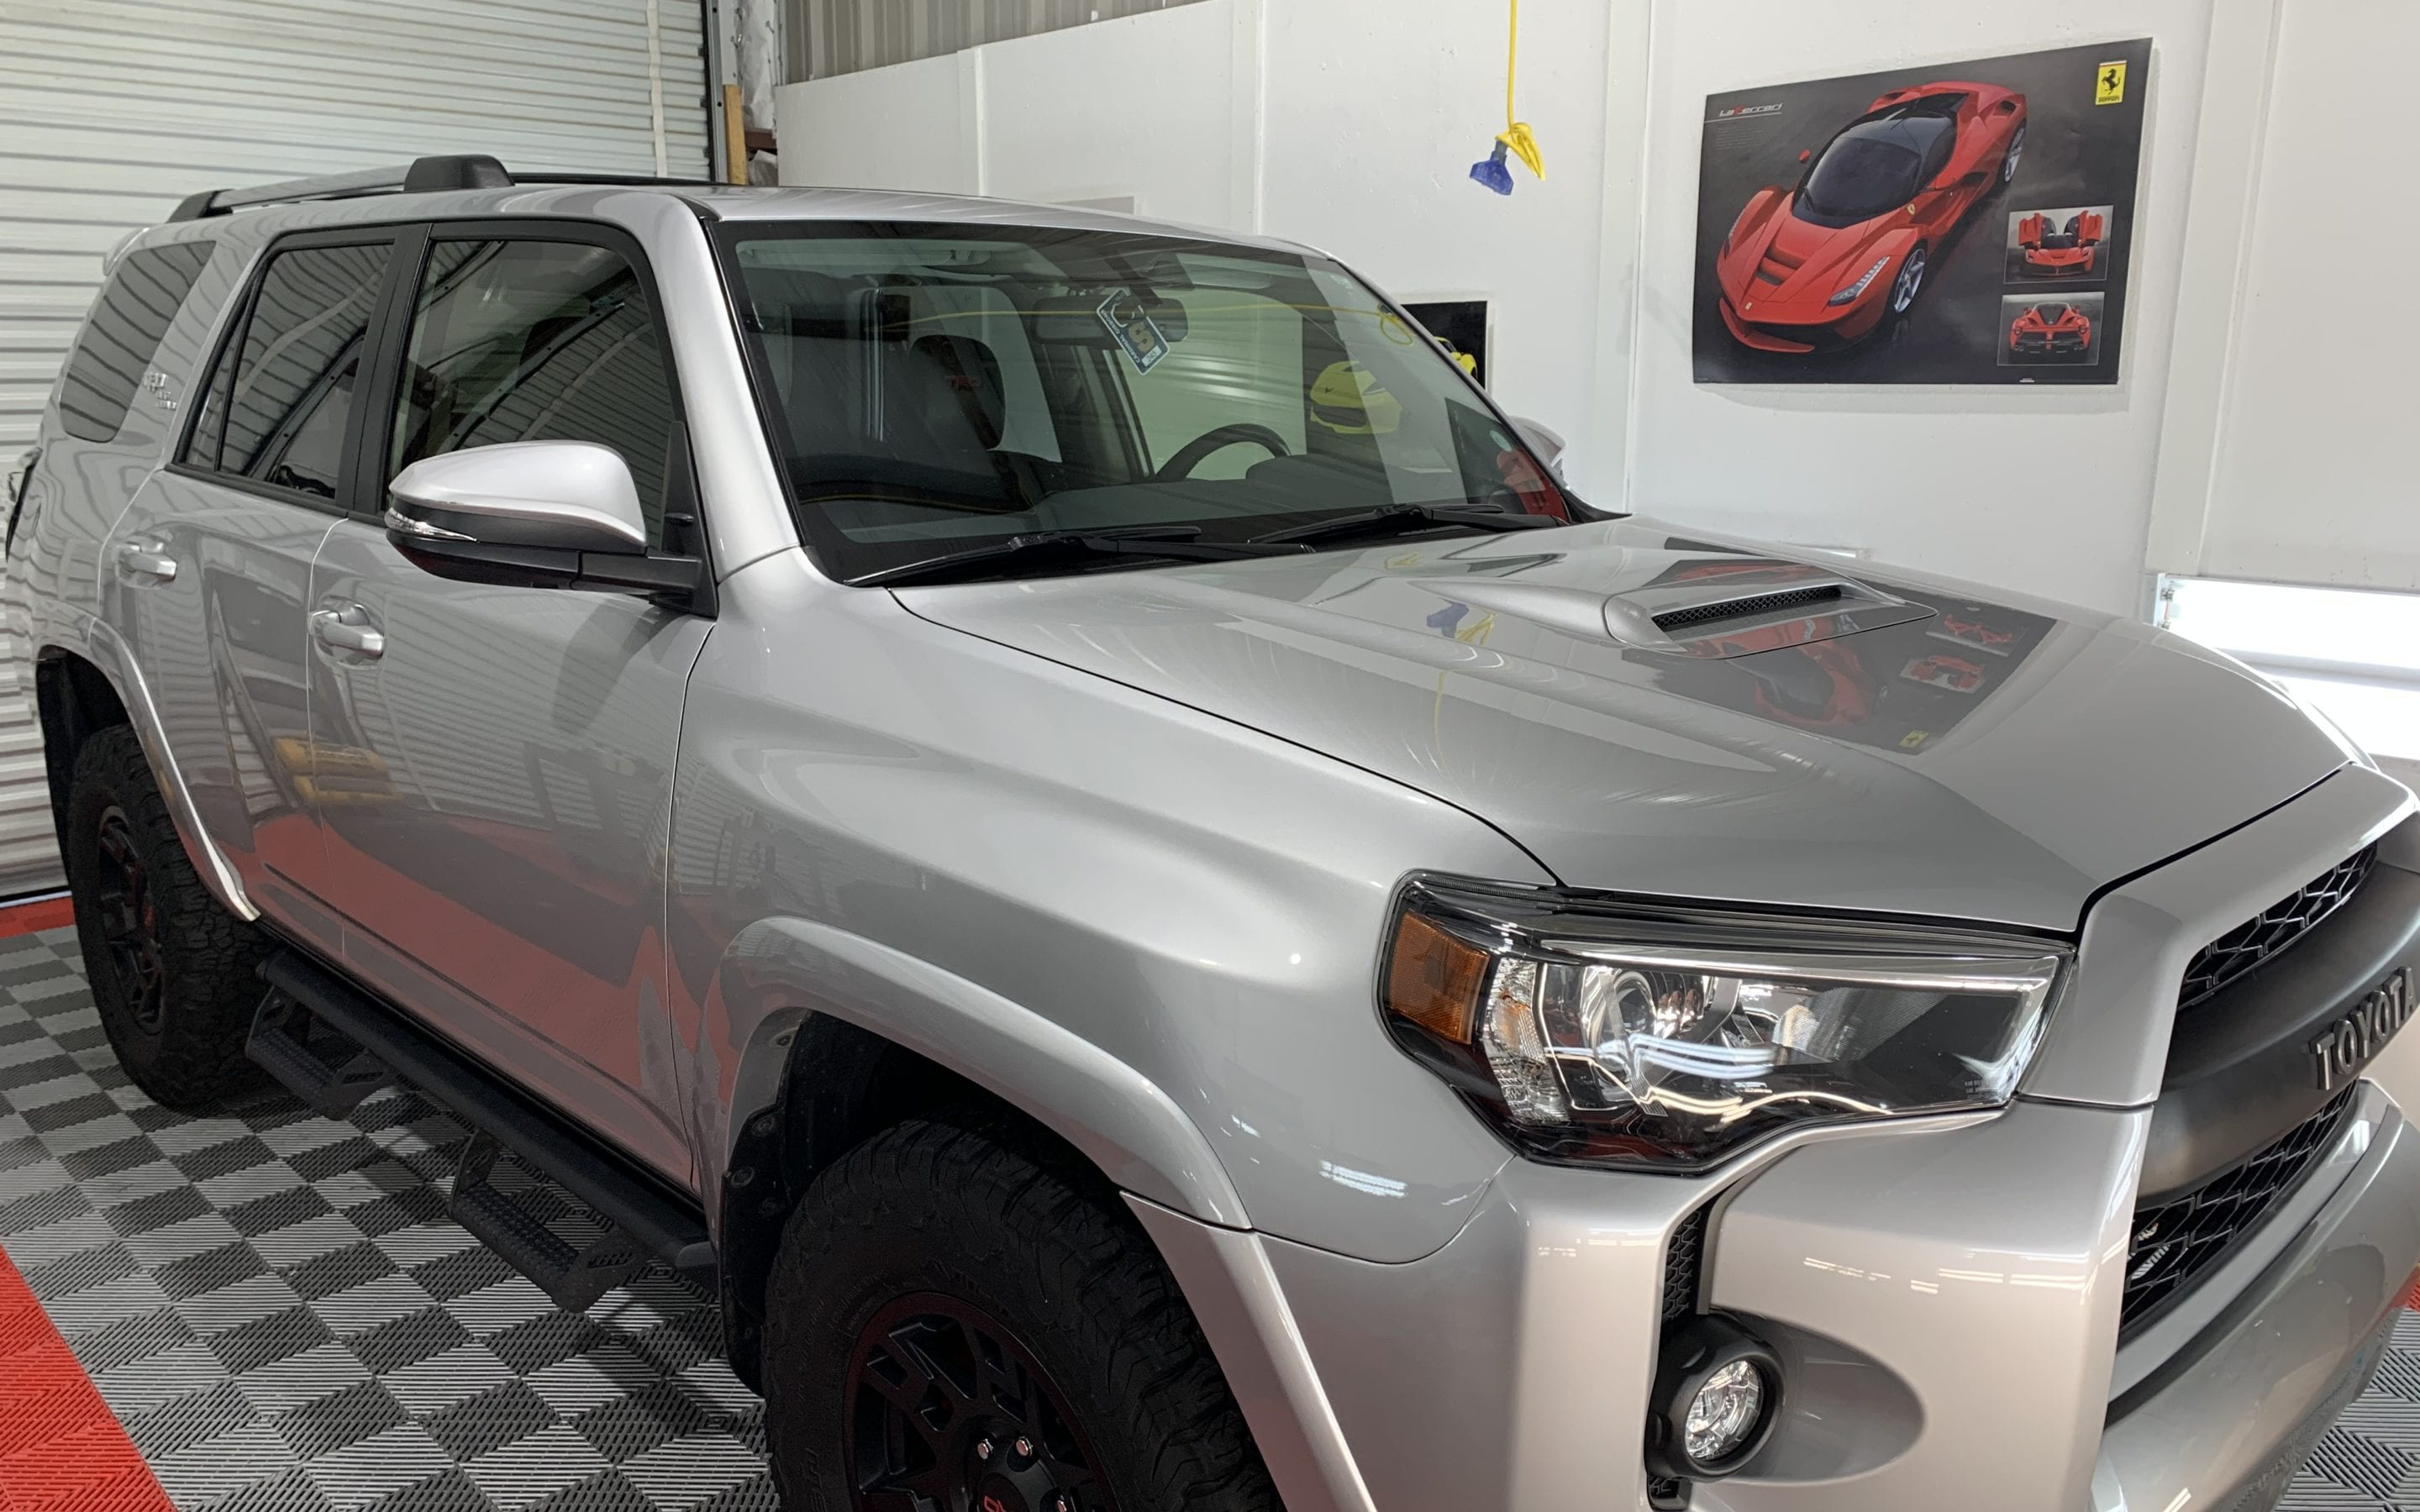 Full Detail of a 2018 Toyota 4Runner